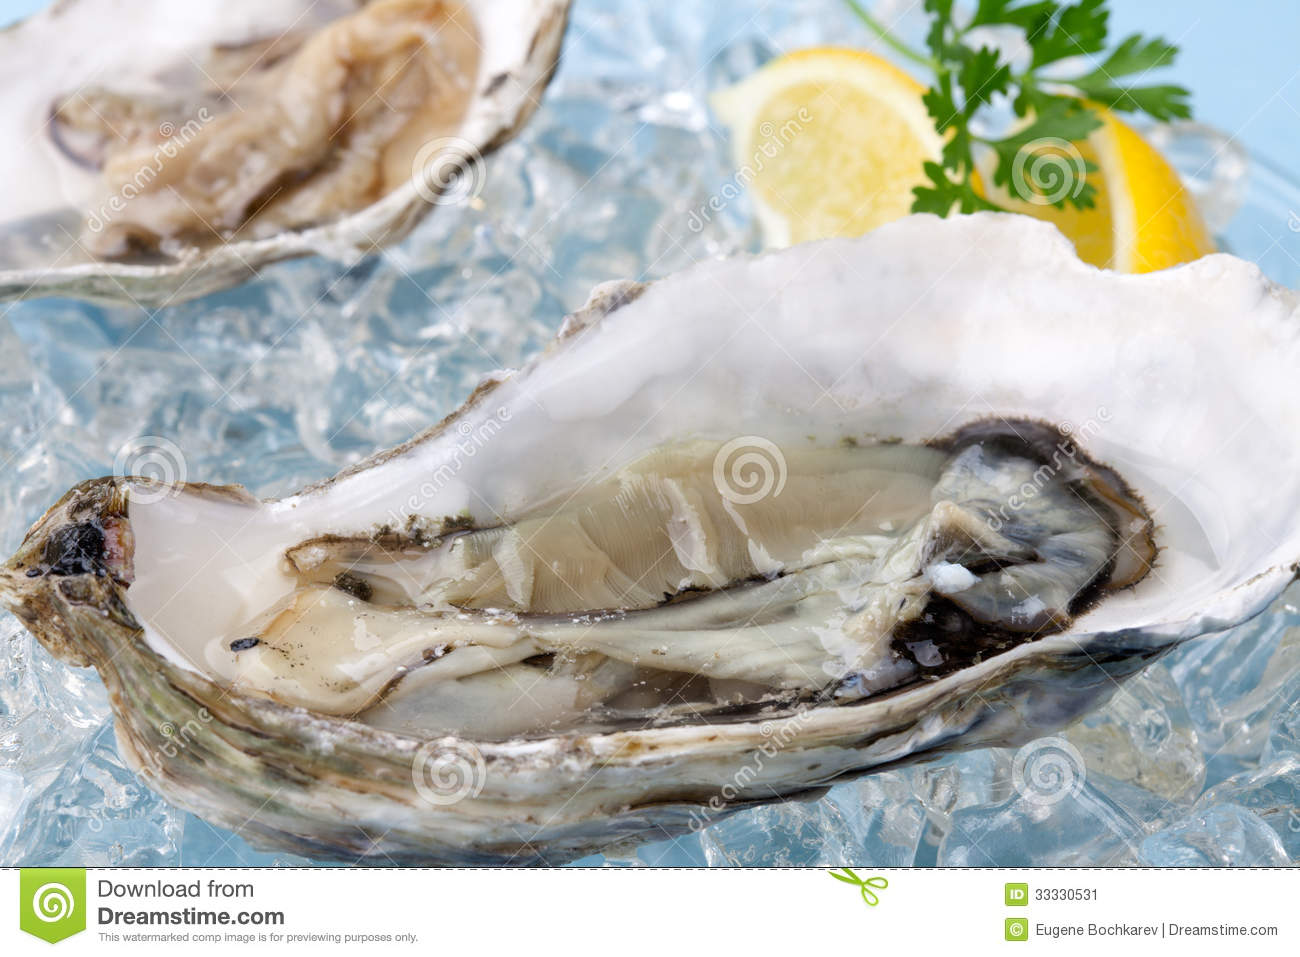 Oysters On Ice Garnished With Lemon And Parsley Over Light Blue